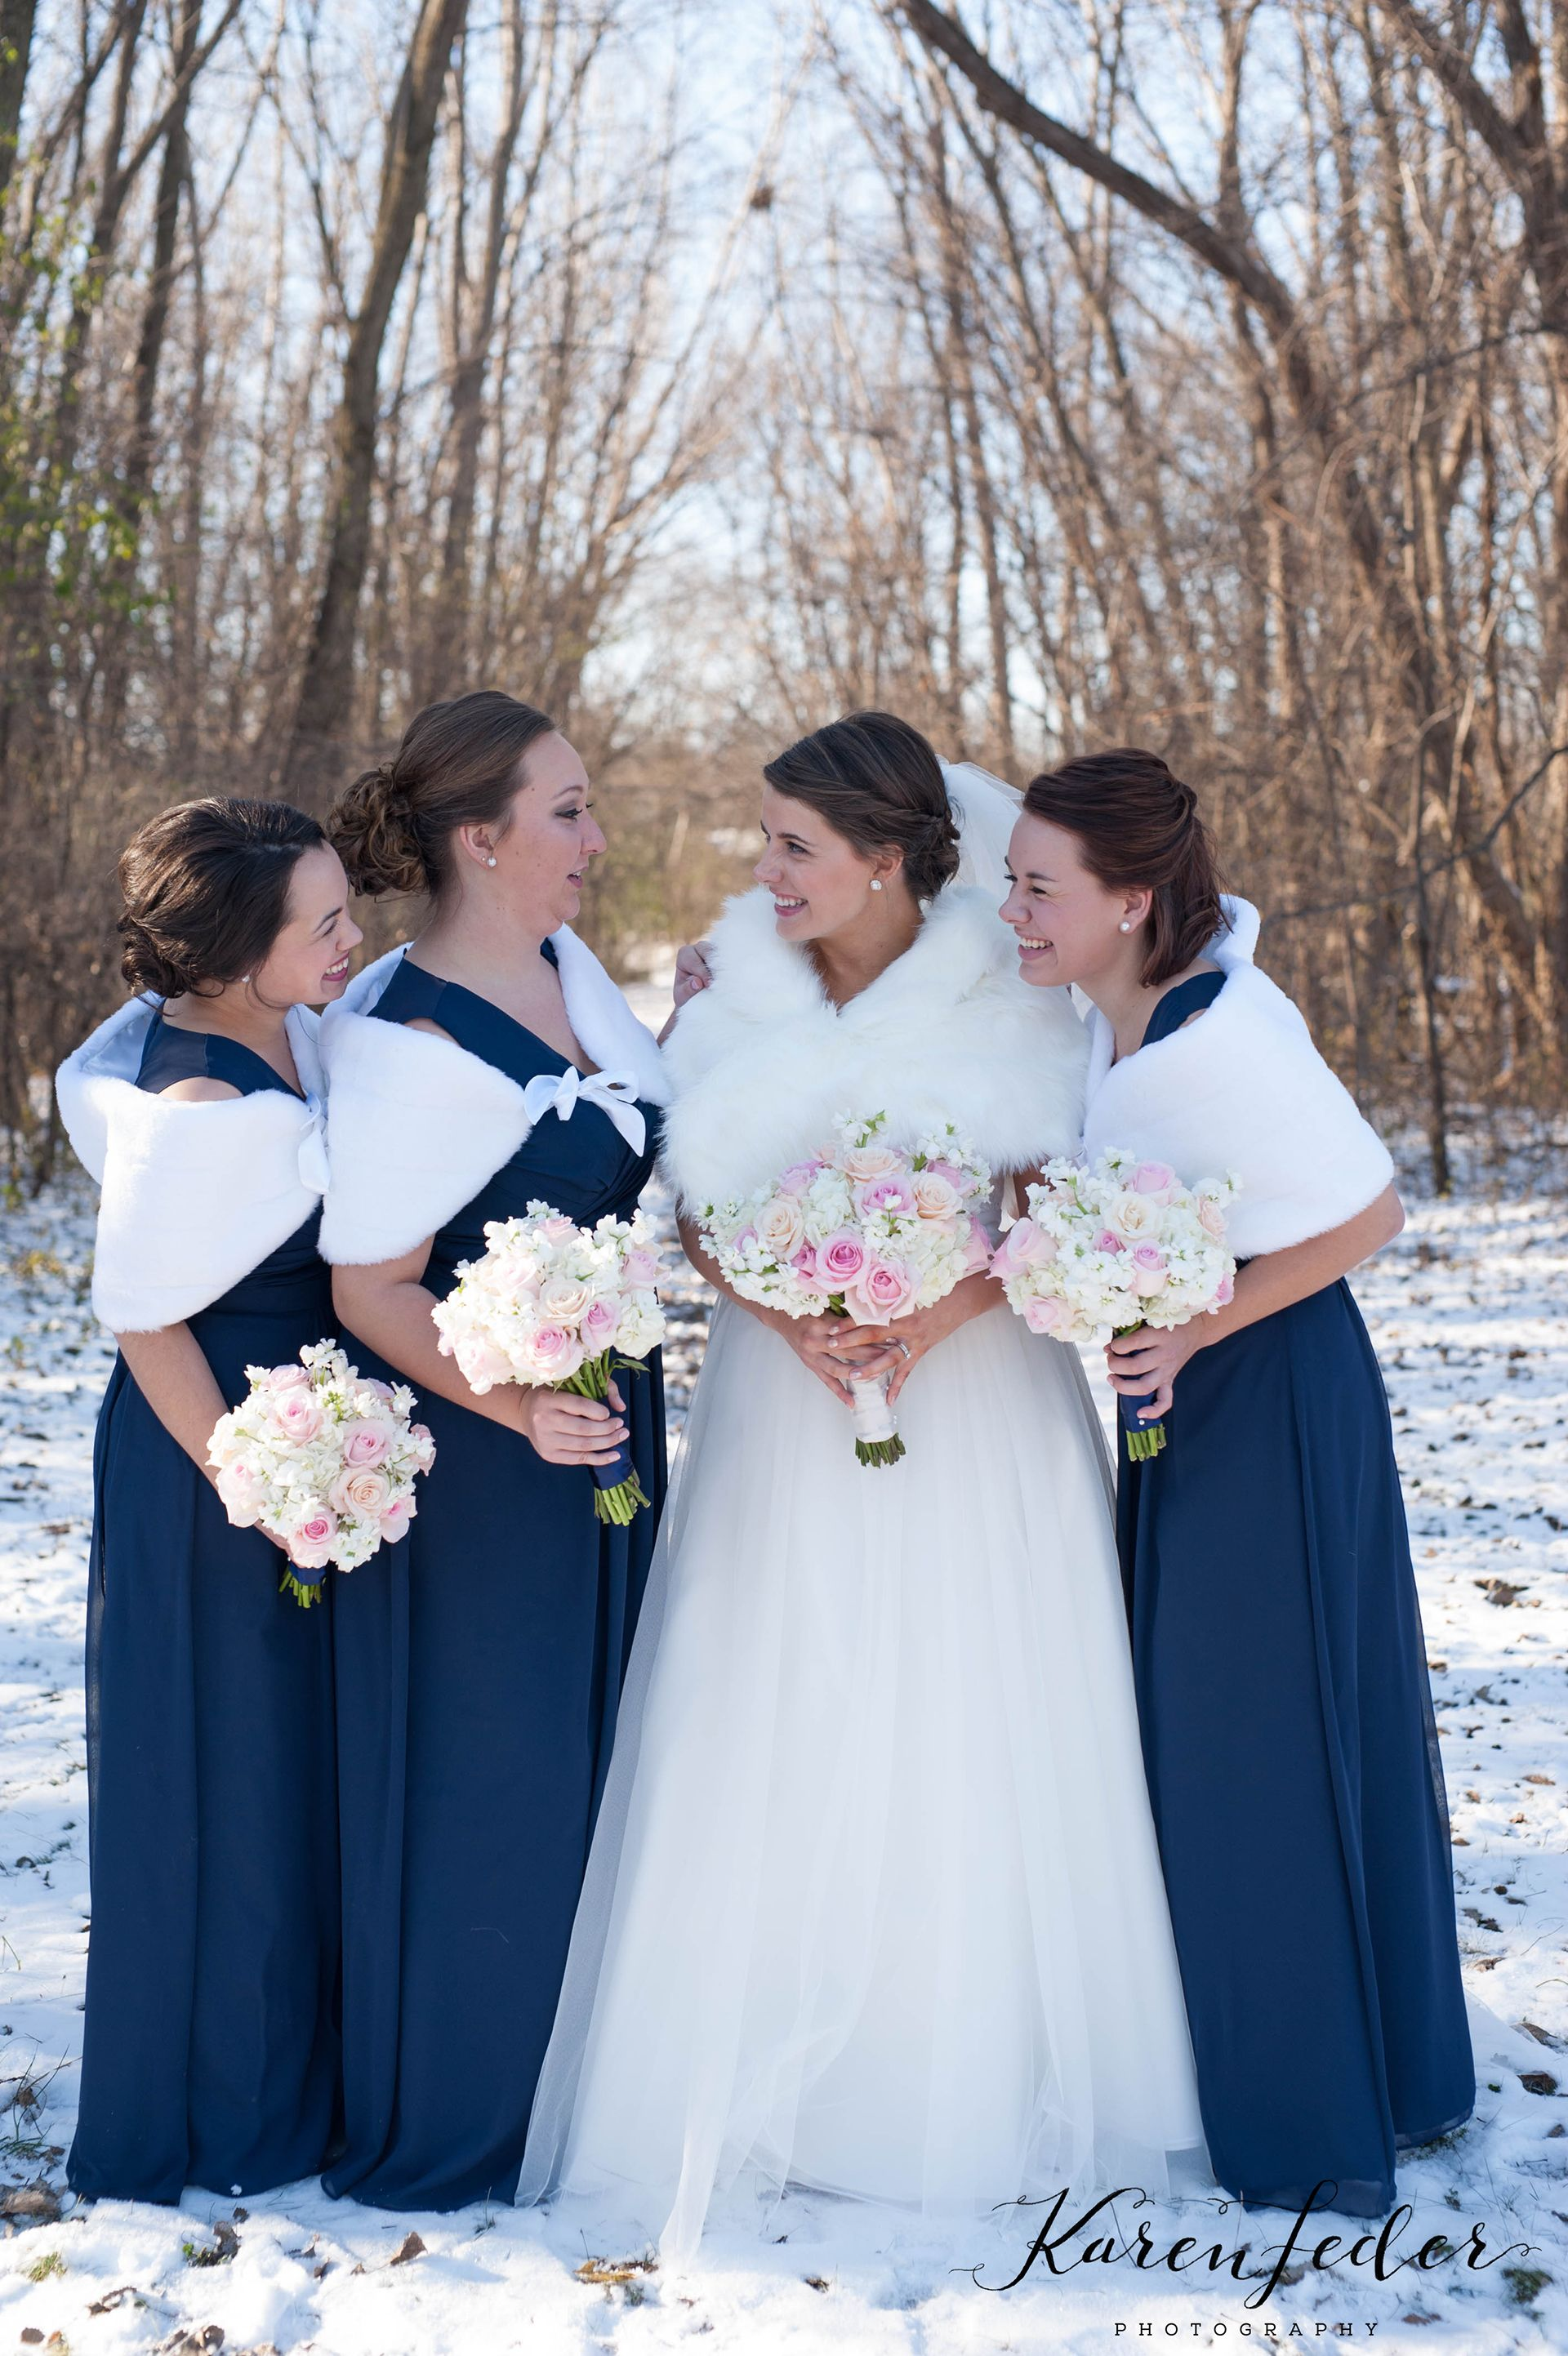 Love This Idea For A Winter Wedding Fur Shawls And Navy Bridesmaid Dresses Karen